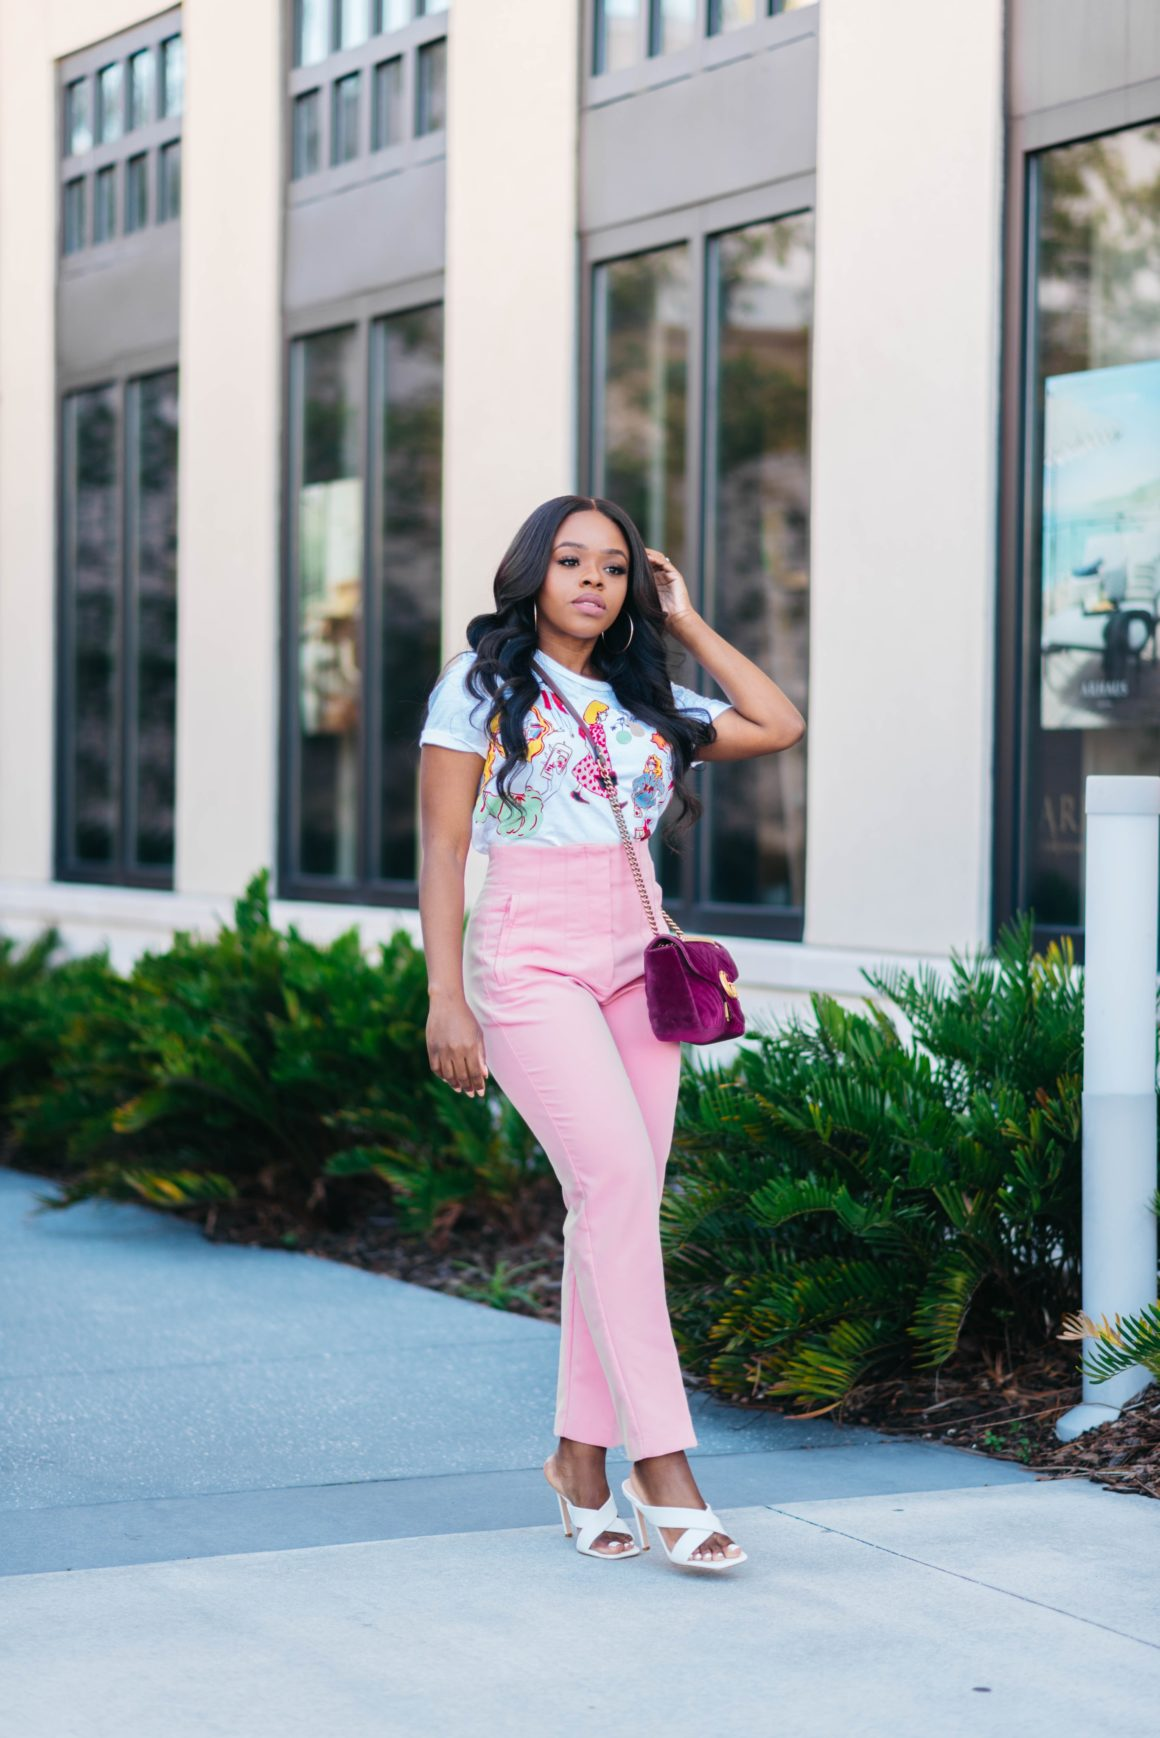 Fashion Bombshell of the Day: Shawnee from Florida